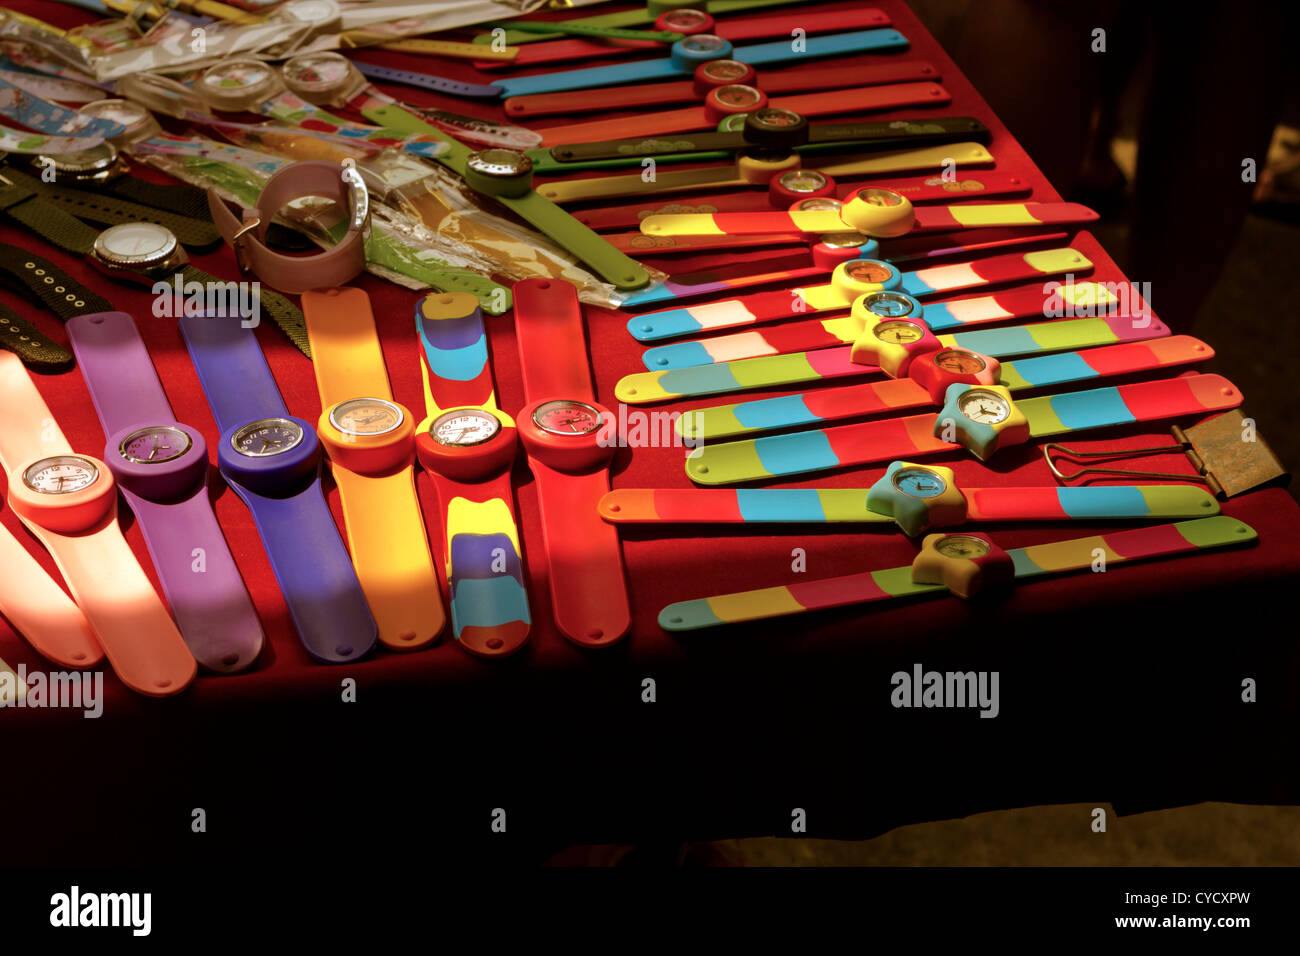 Wristwatches in a row on market stall table - Stock Image